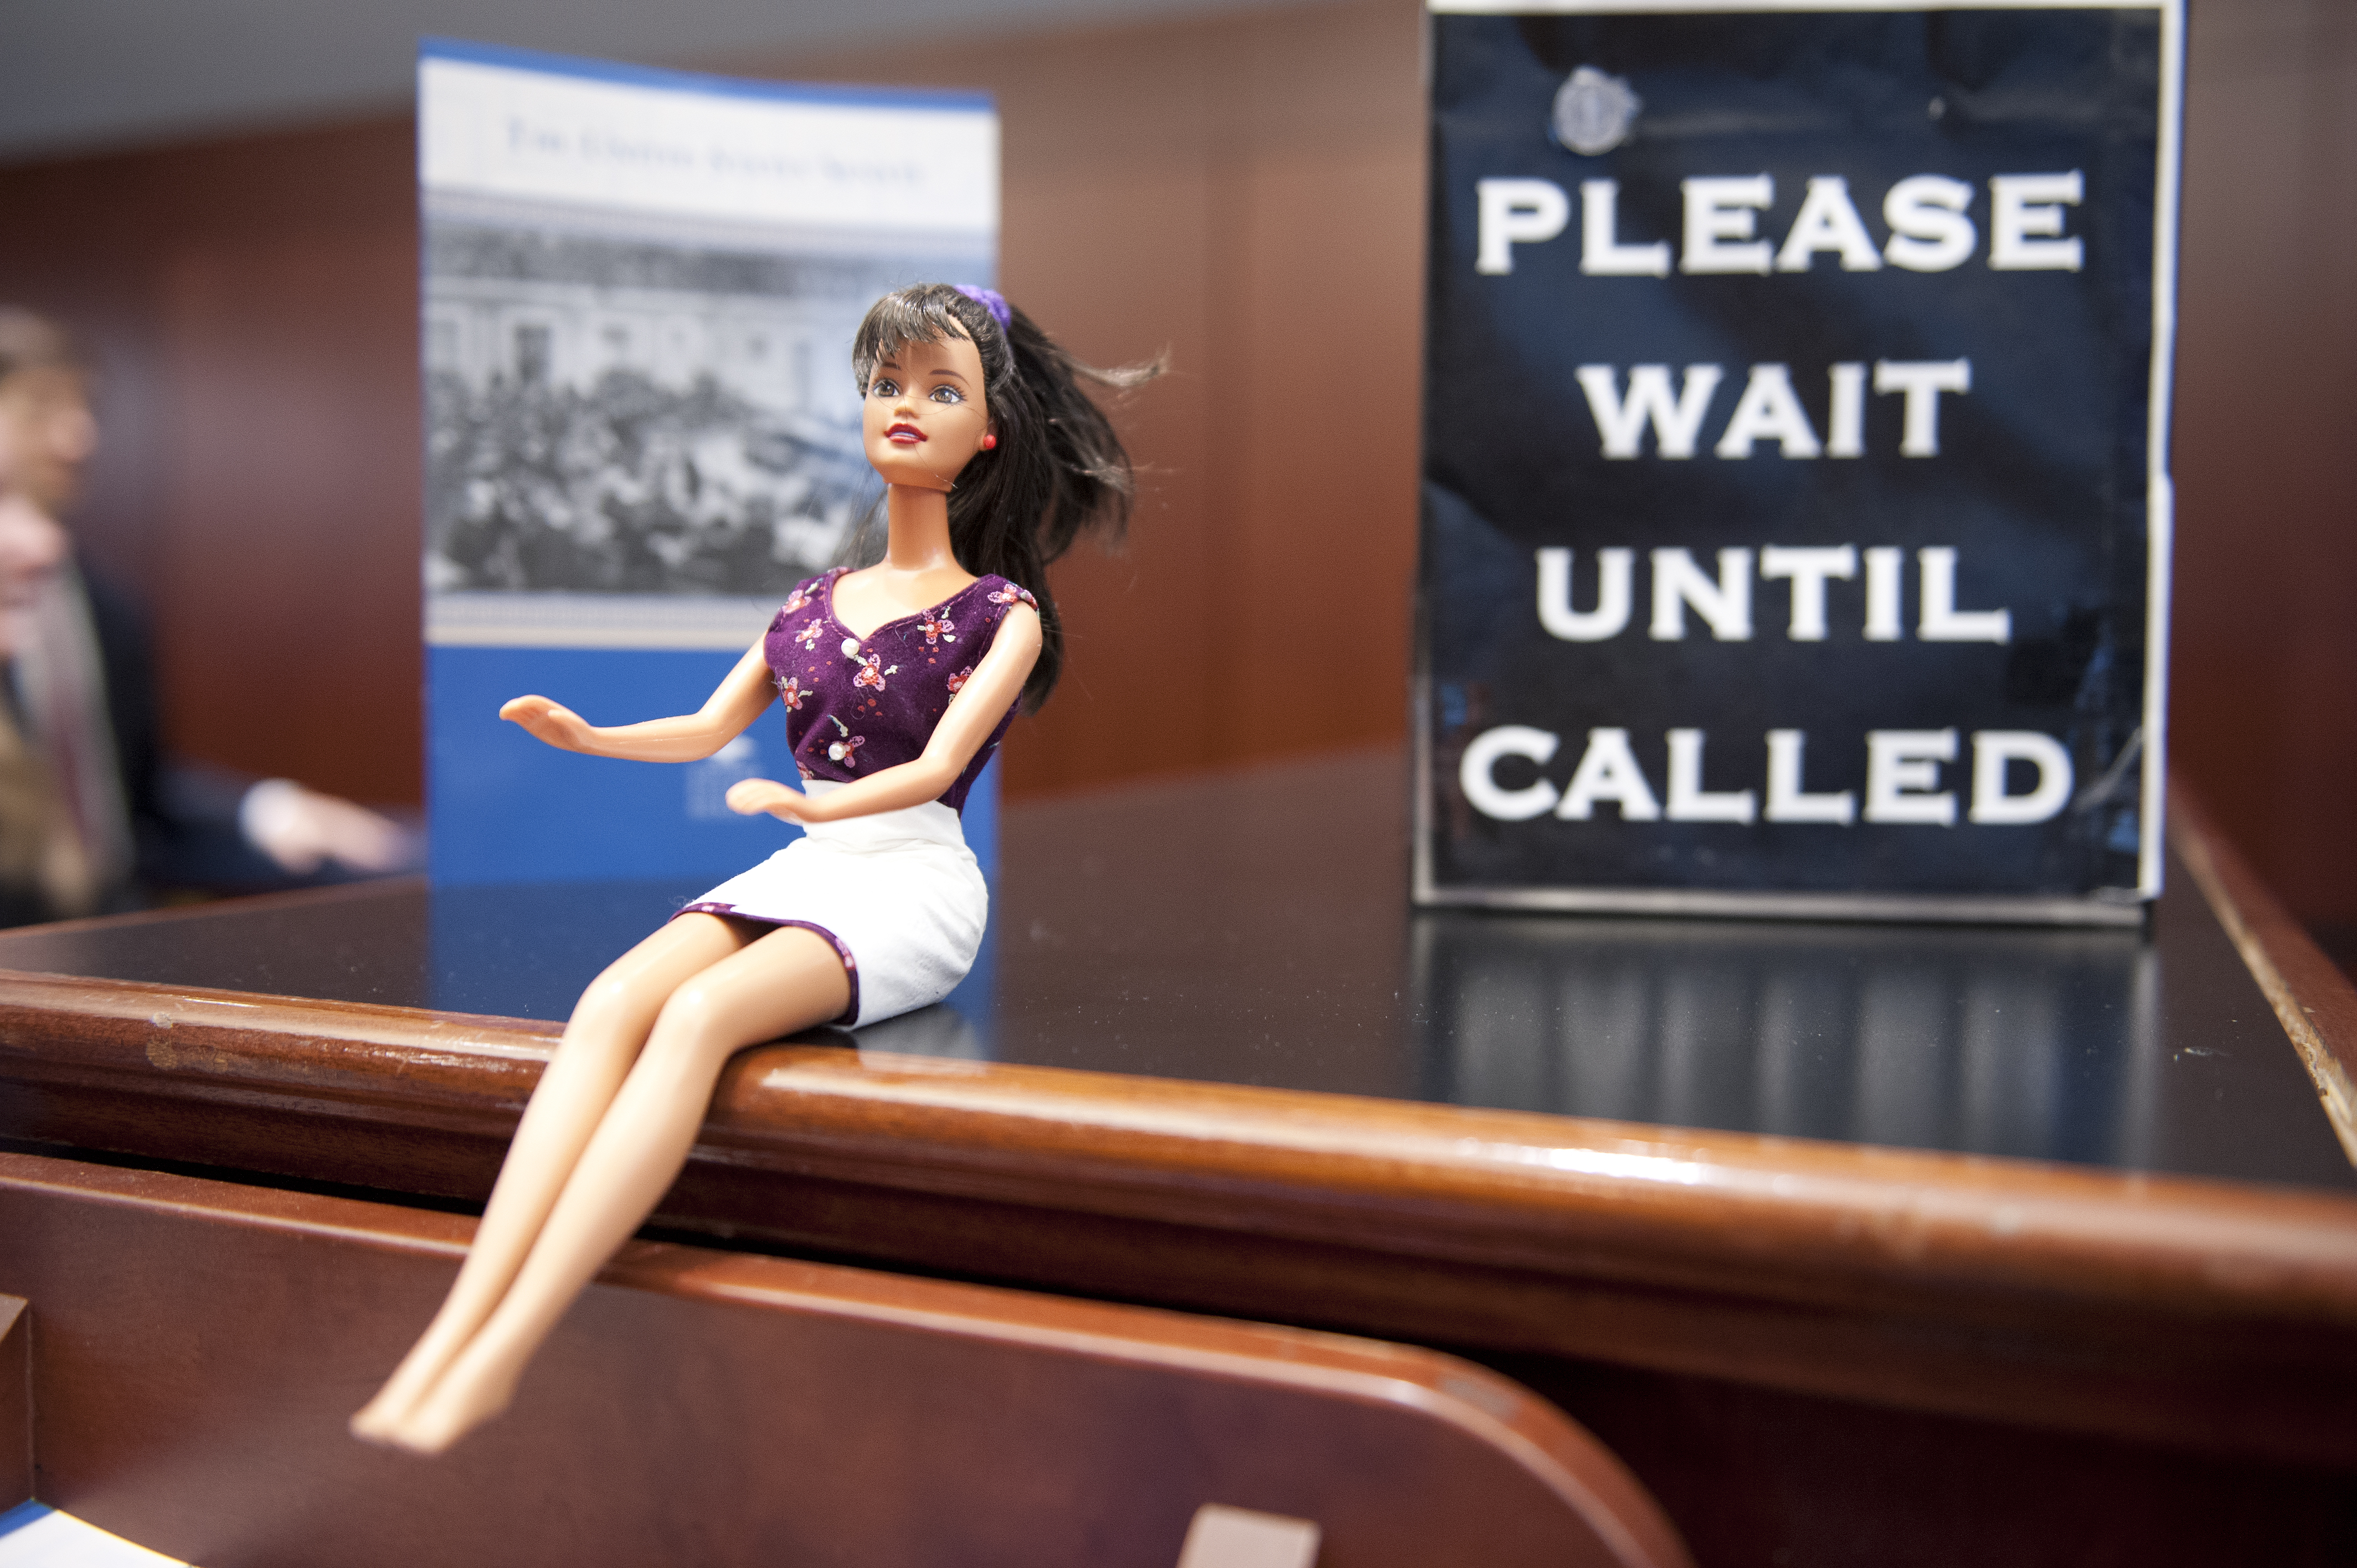 Check In Barbie greets visitors to the Senate Gallery Check In in the Capitol Visitors Center of the U.S. Capitol on January 15, 2014.